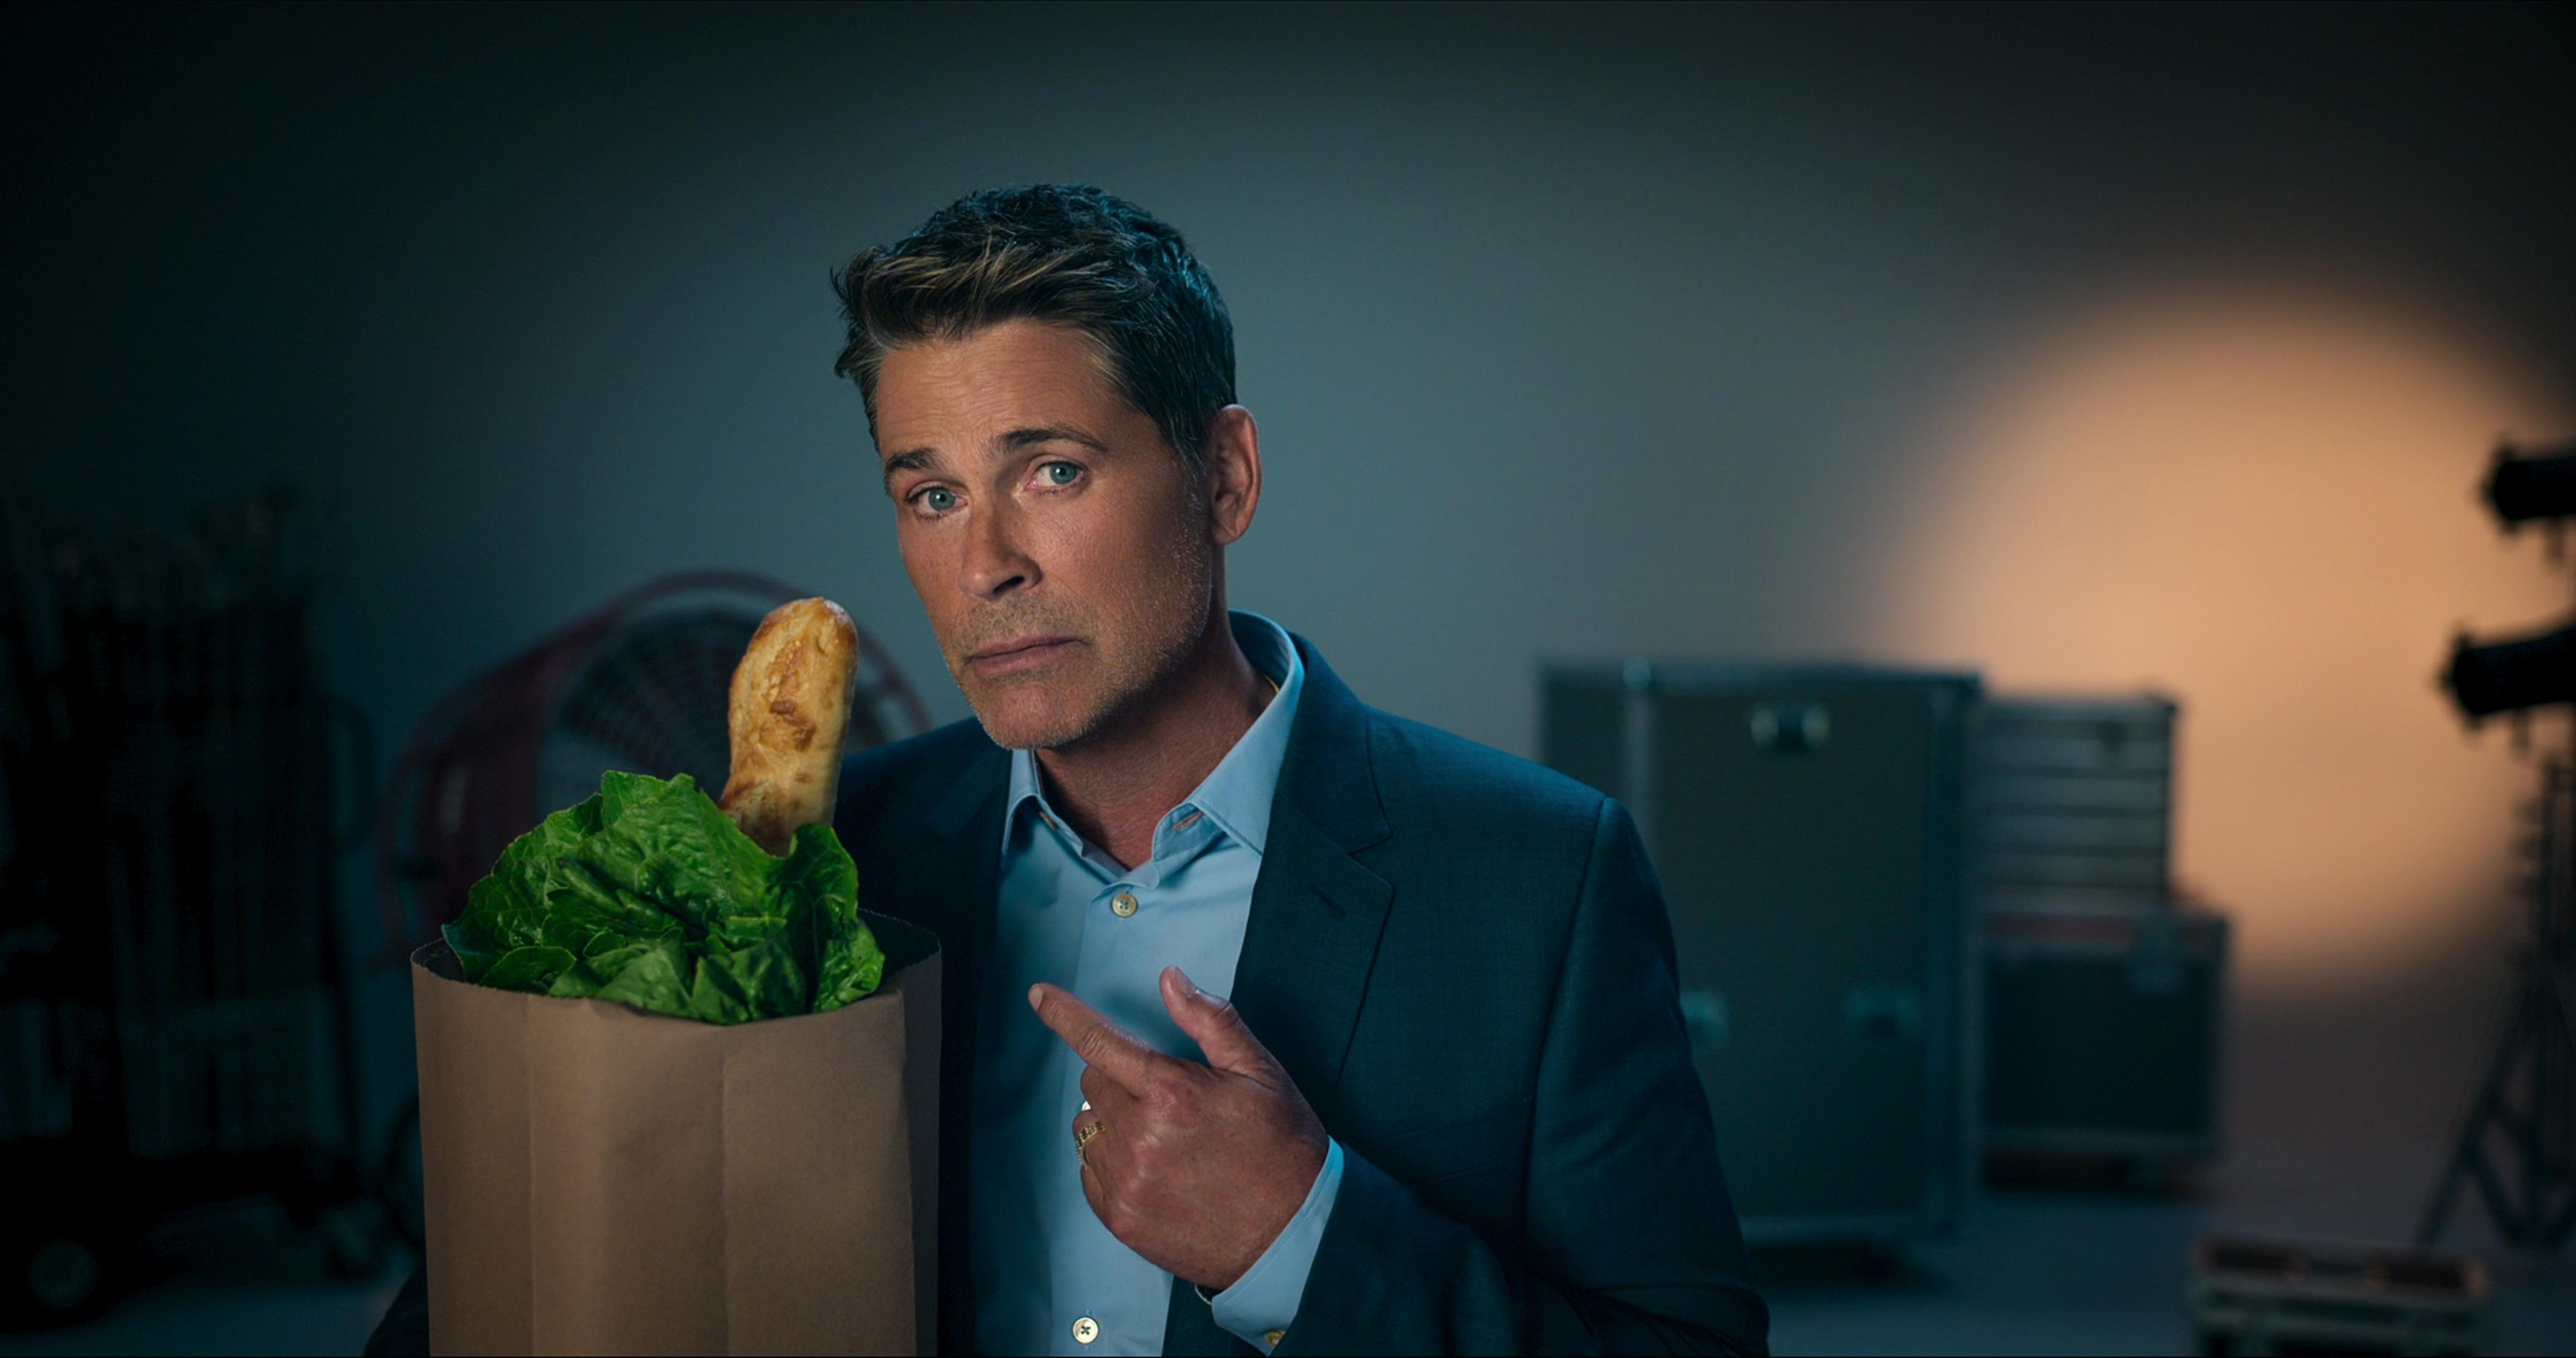 Rob Lowe in 'Attack of the Hollywood Clichés'